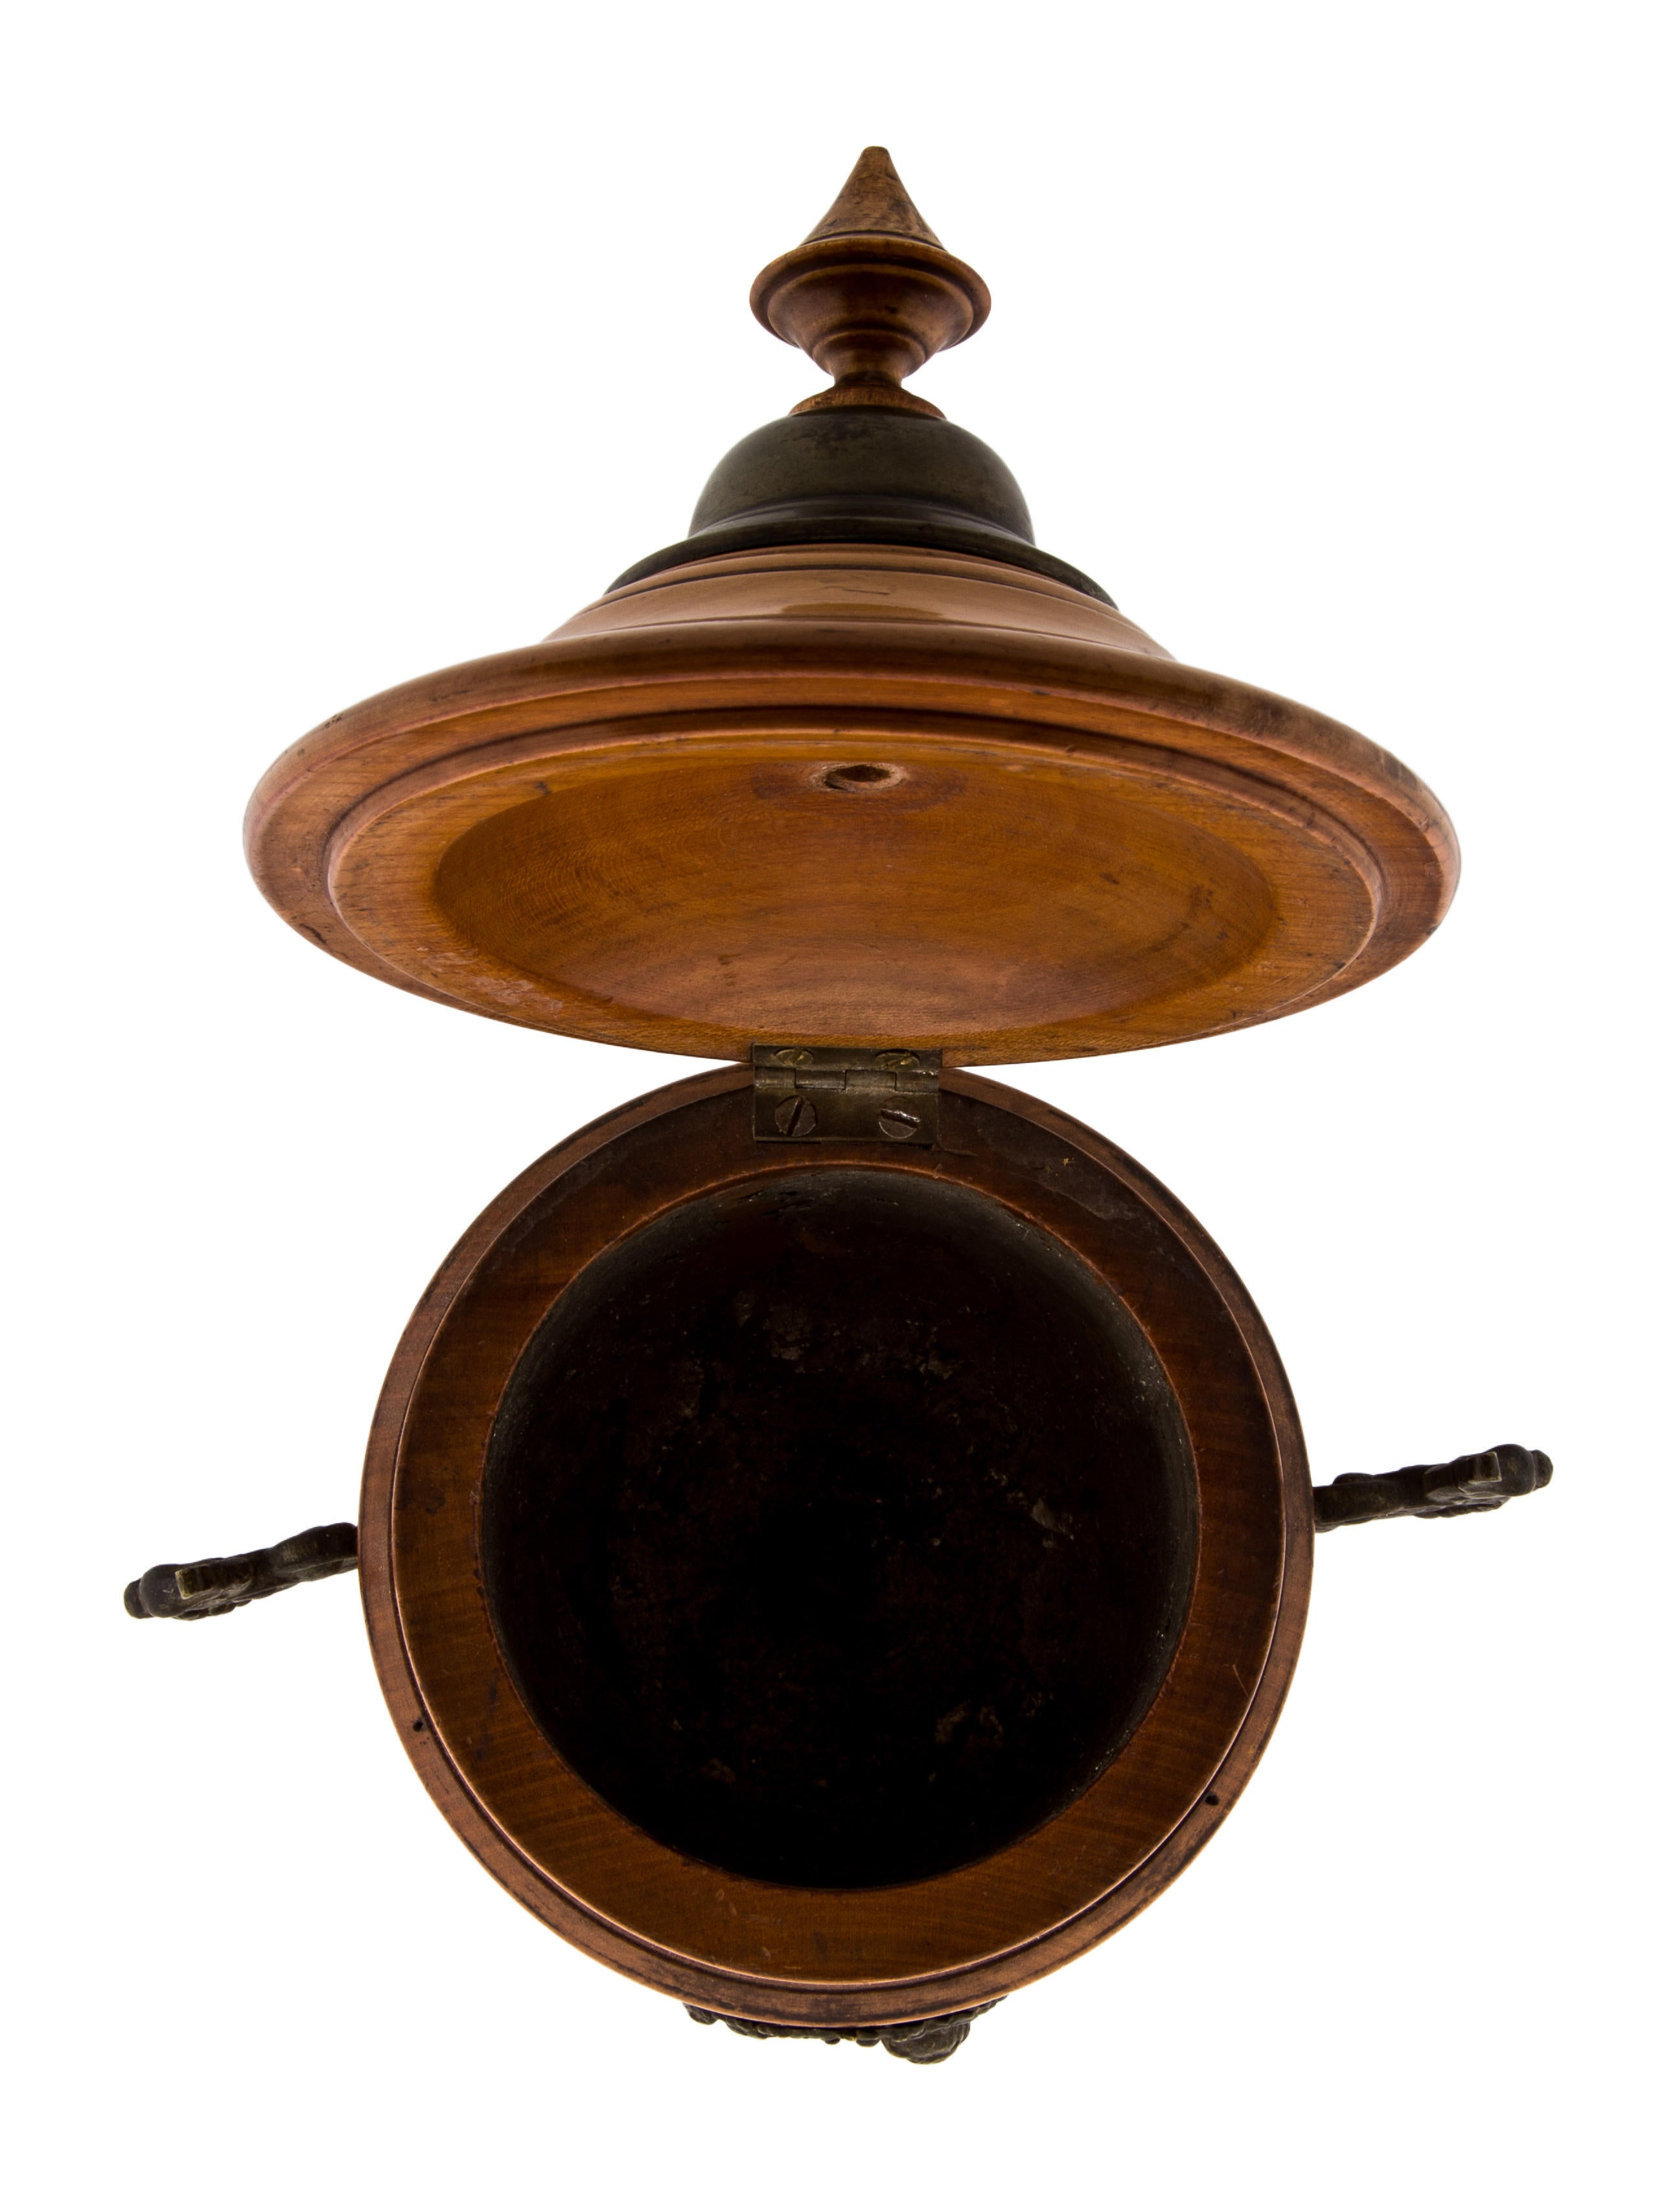 Wood brass urn decor and accessories the